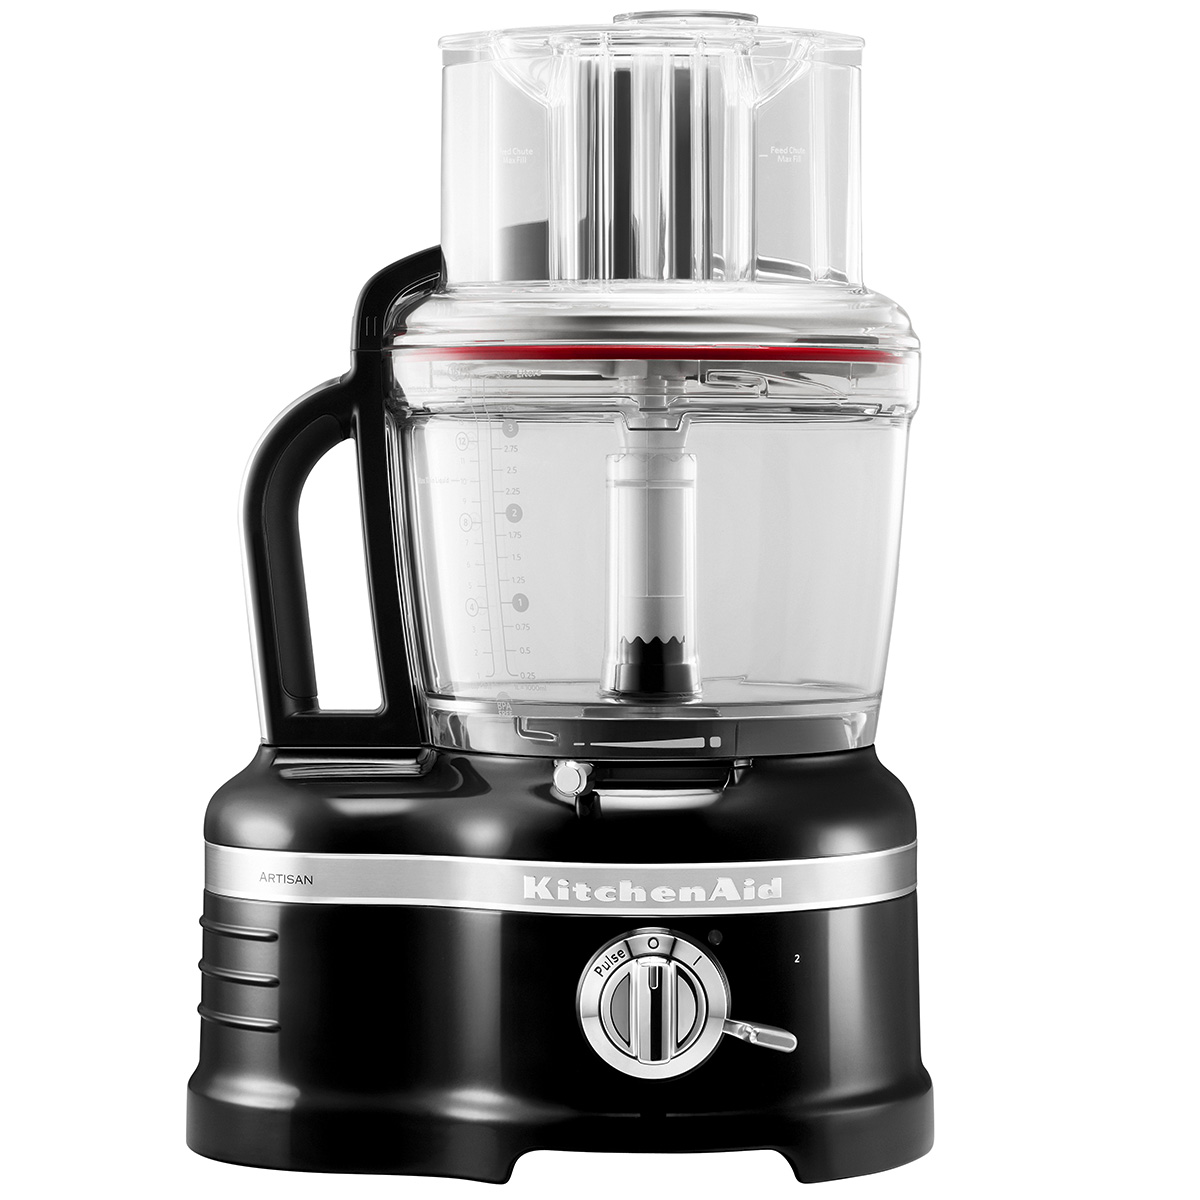 Image of   KitchenAid foodprocessor - Artisan - Sort